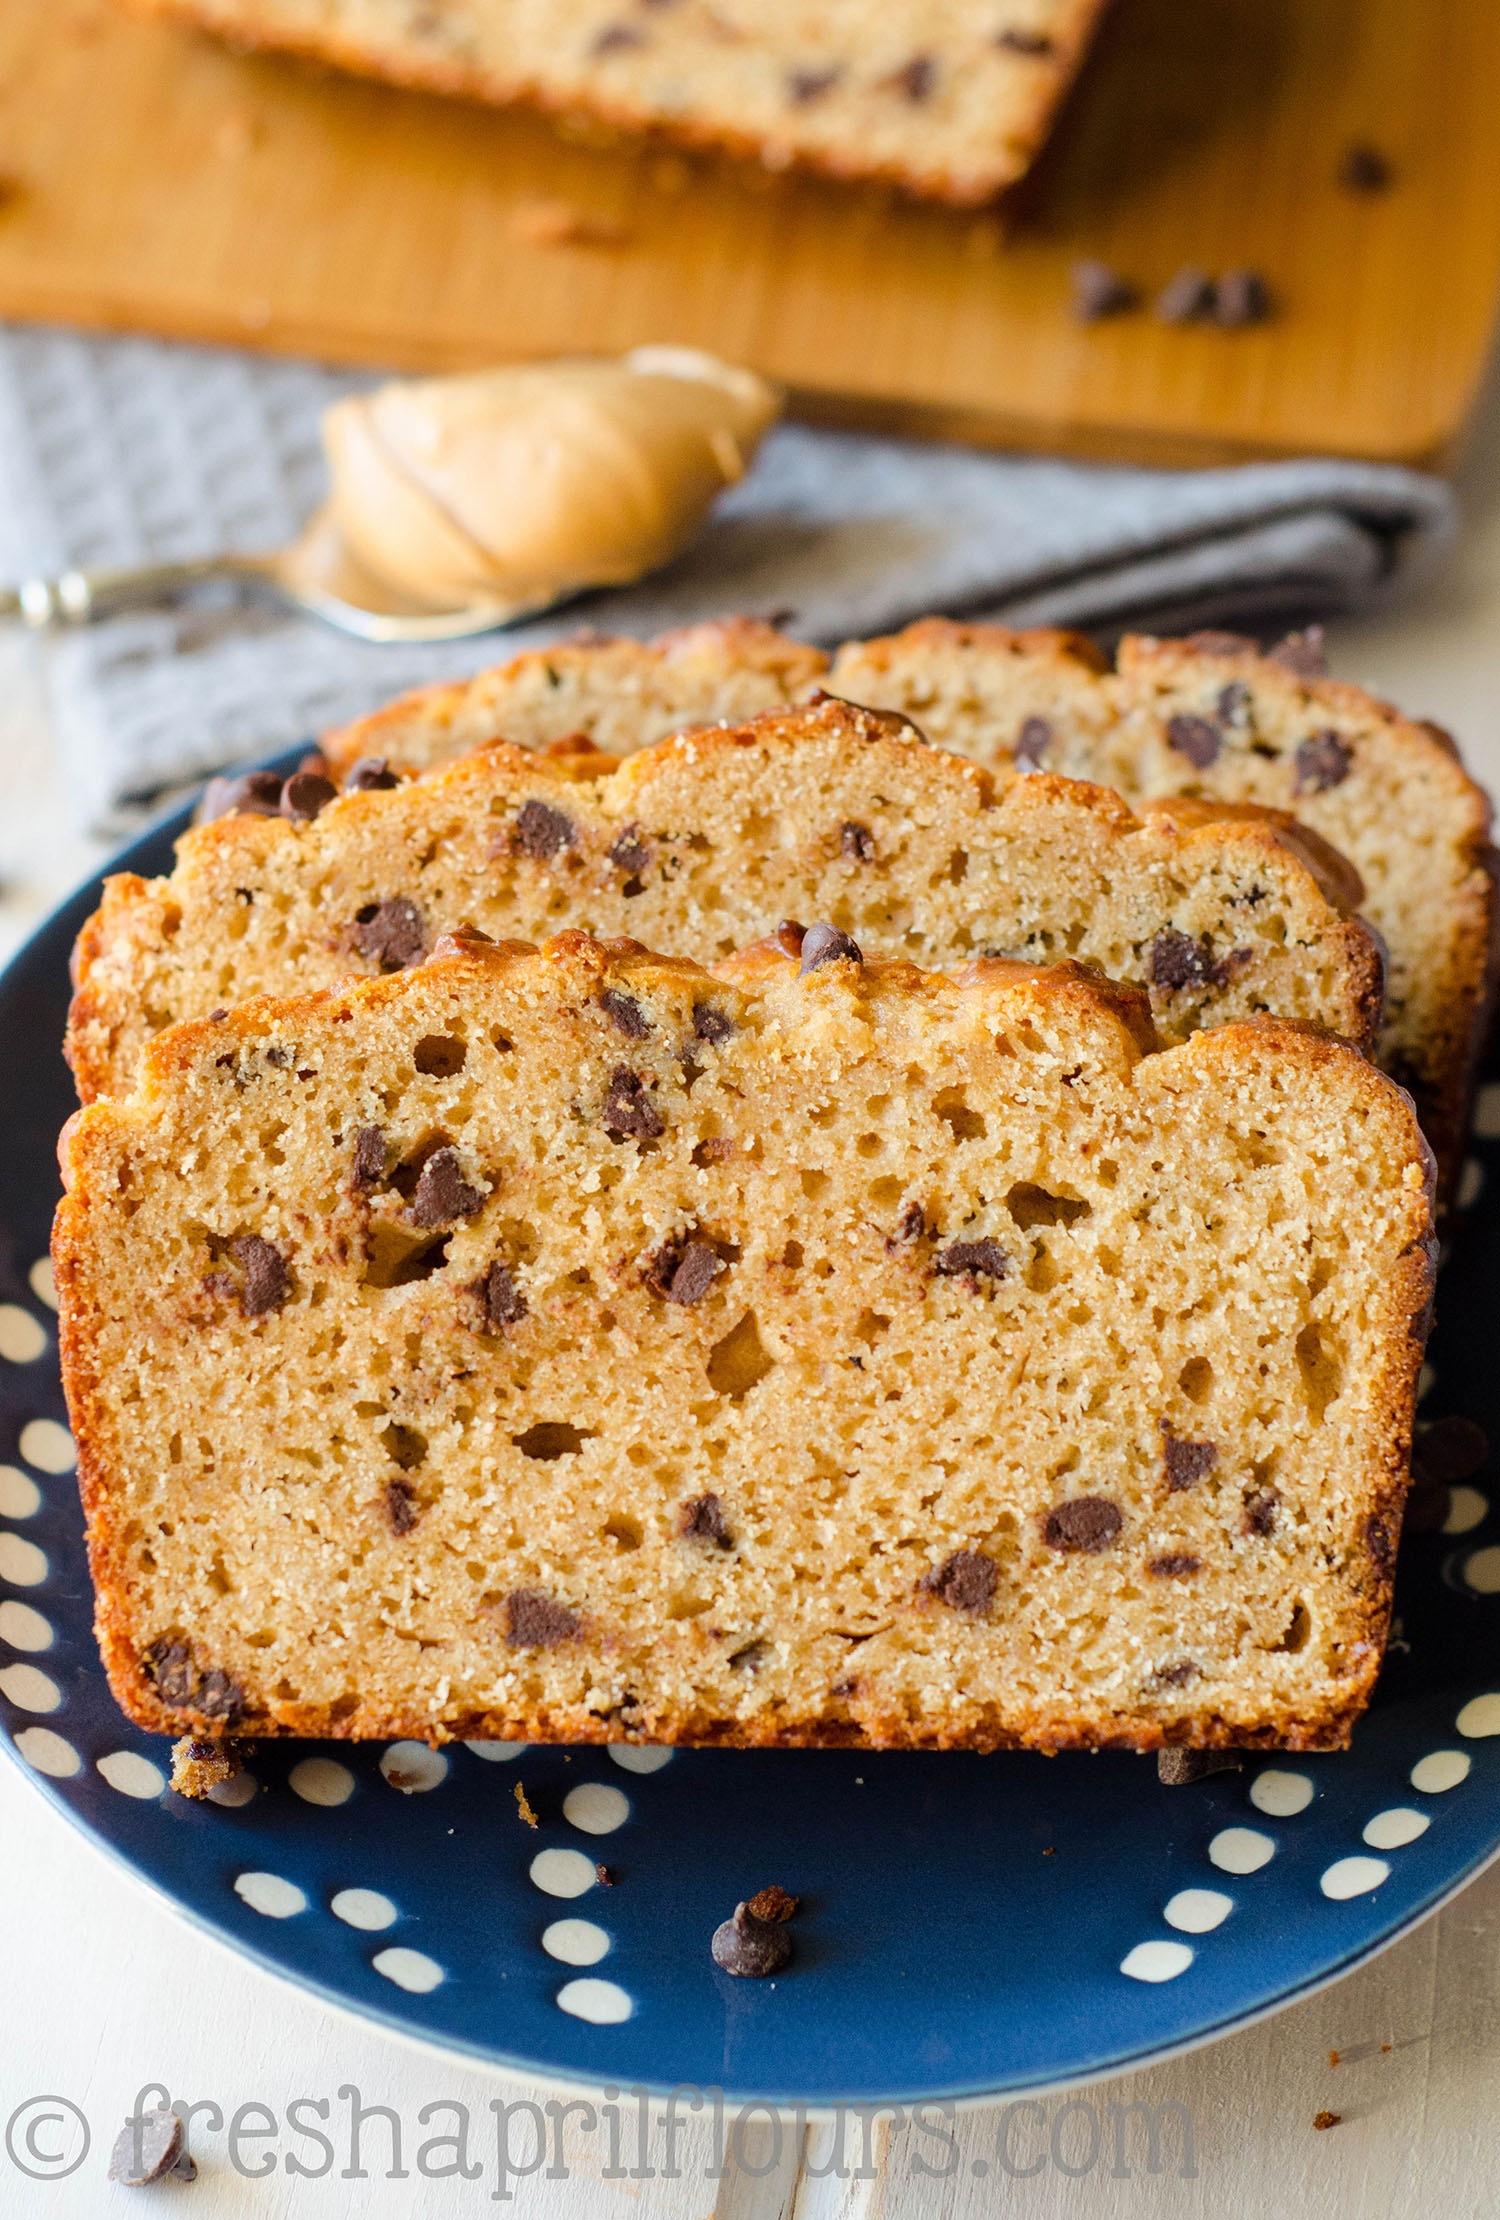 Chocolate Chip Peanut Butter Bread